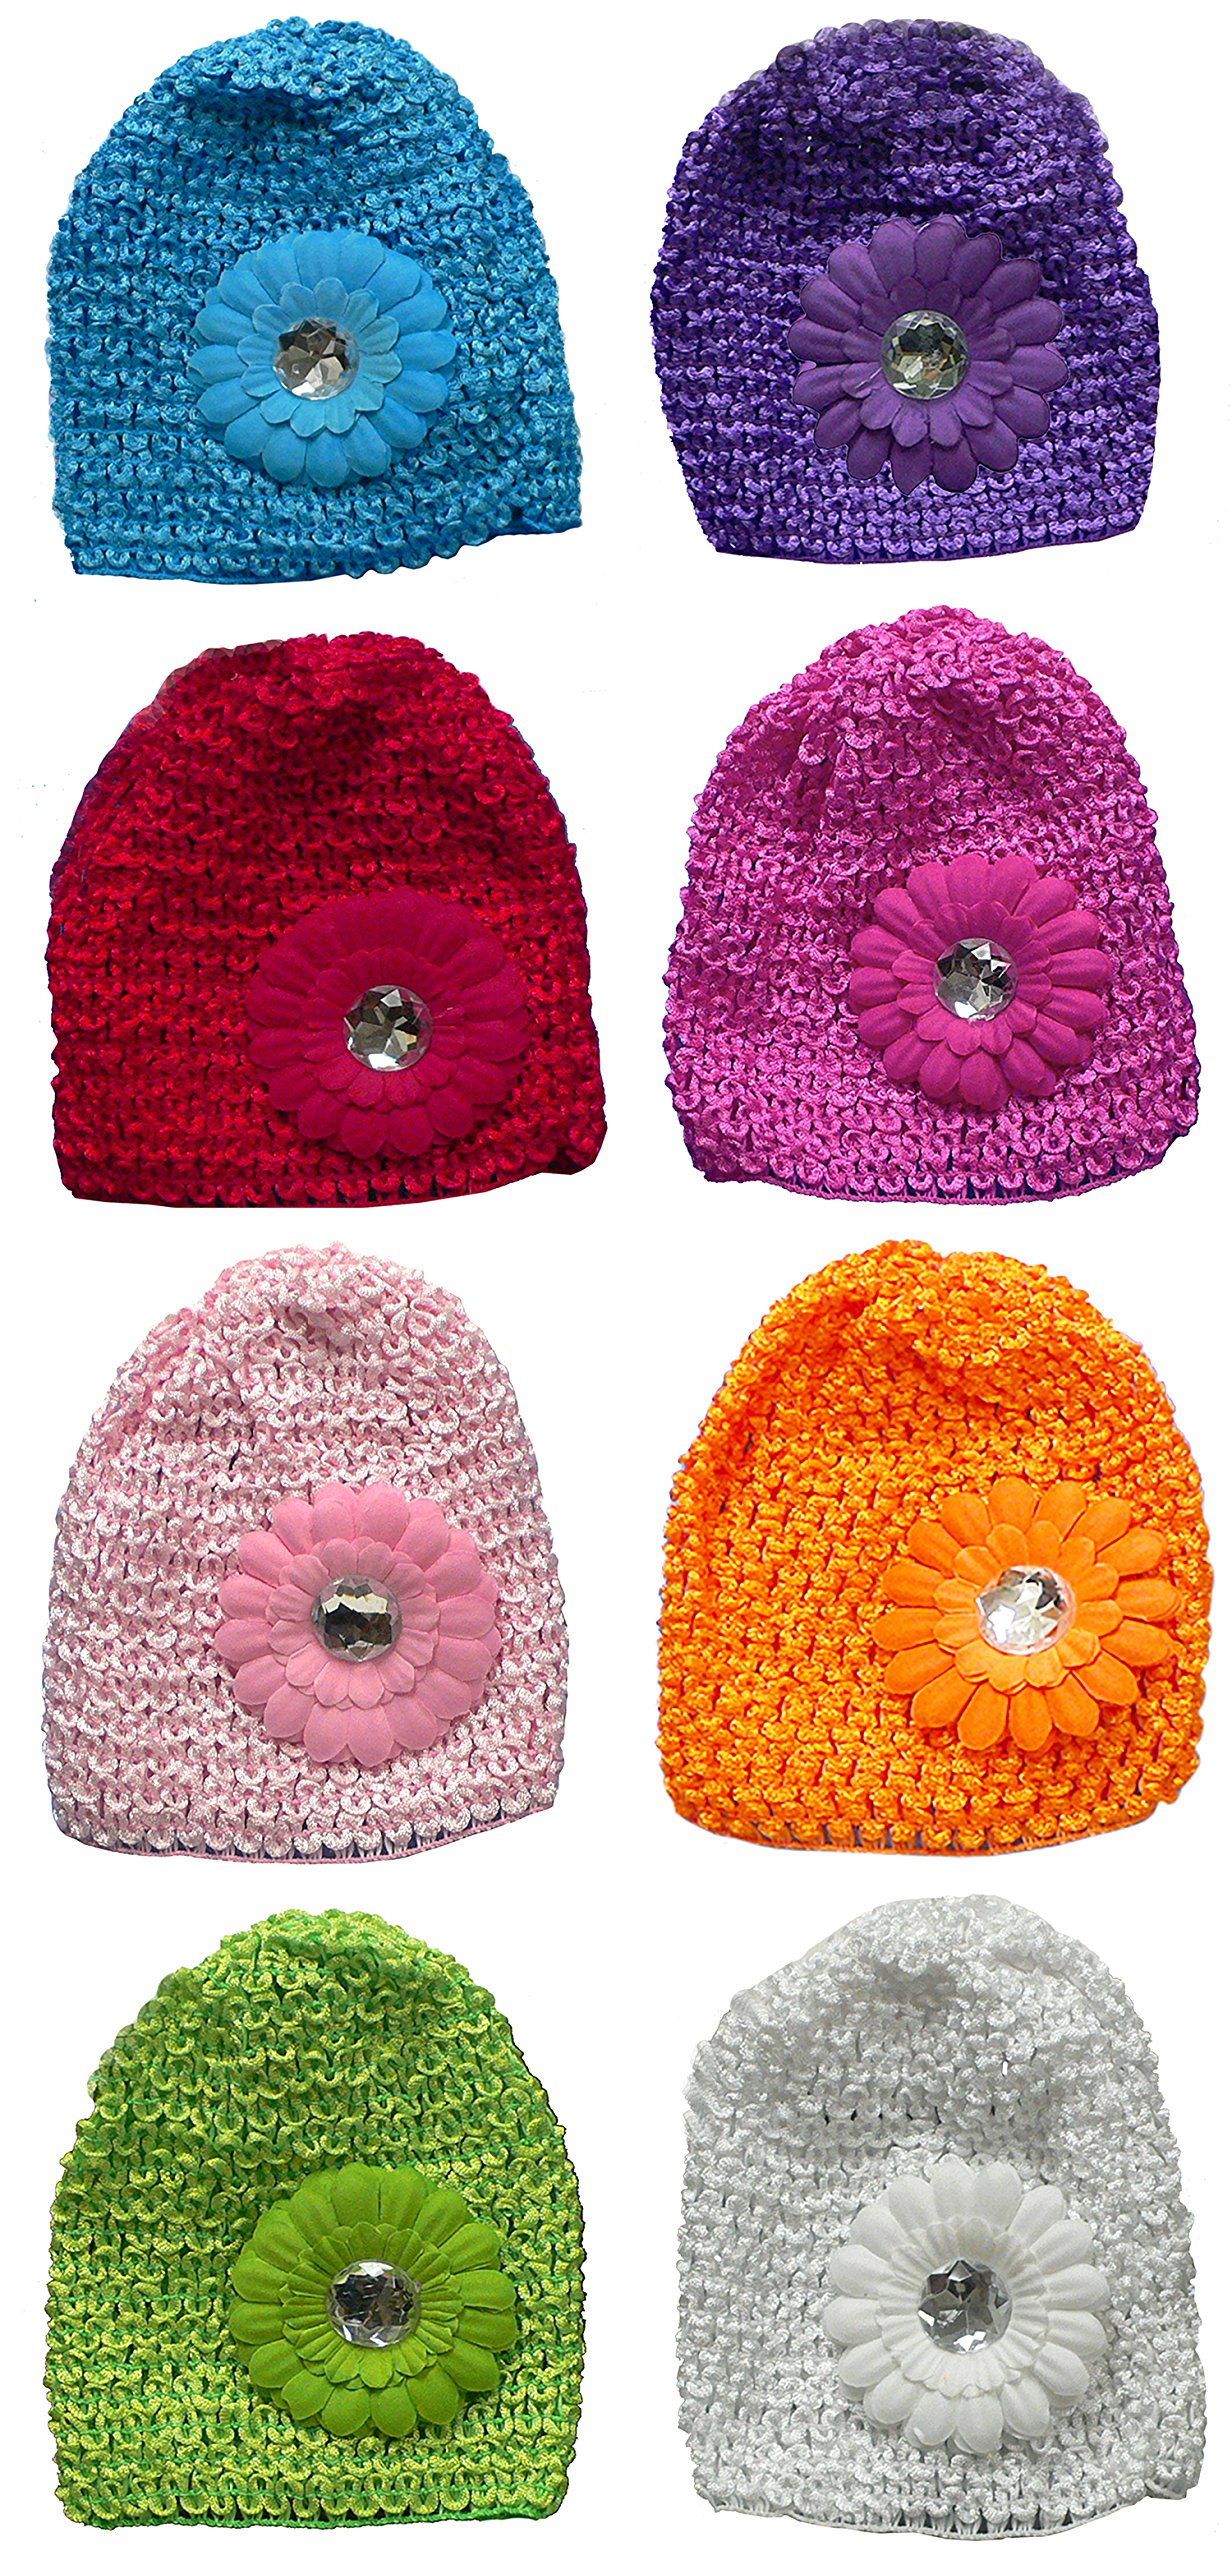 Bella Set of 8 Toddler Knitted Bonnets Baby Girl Hats U16250-0020-8